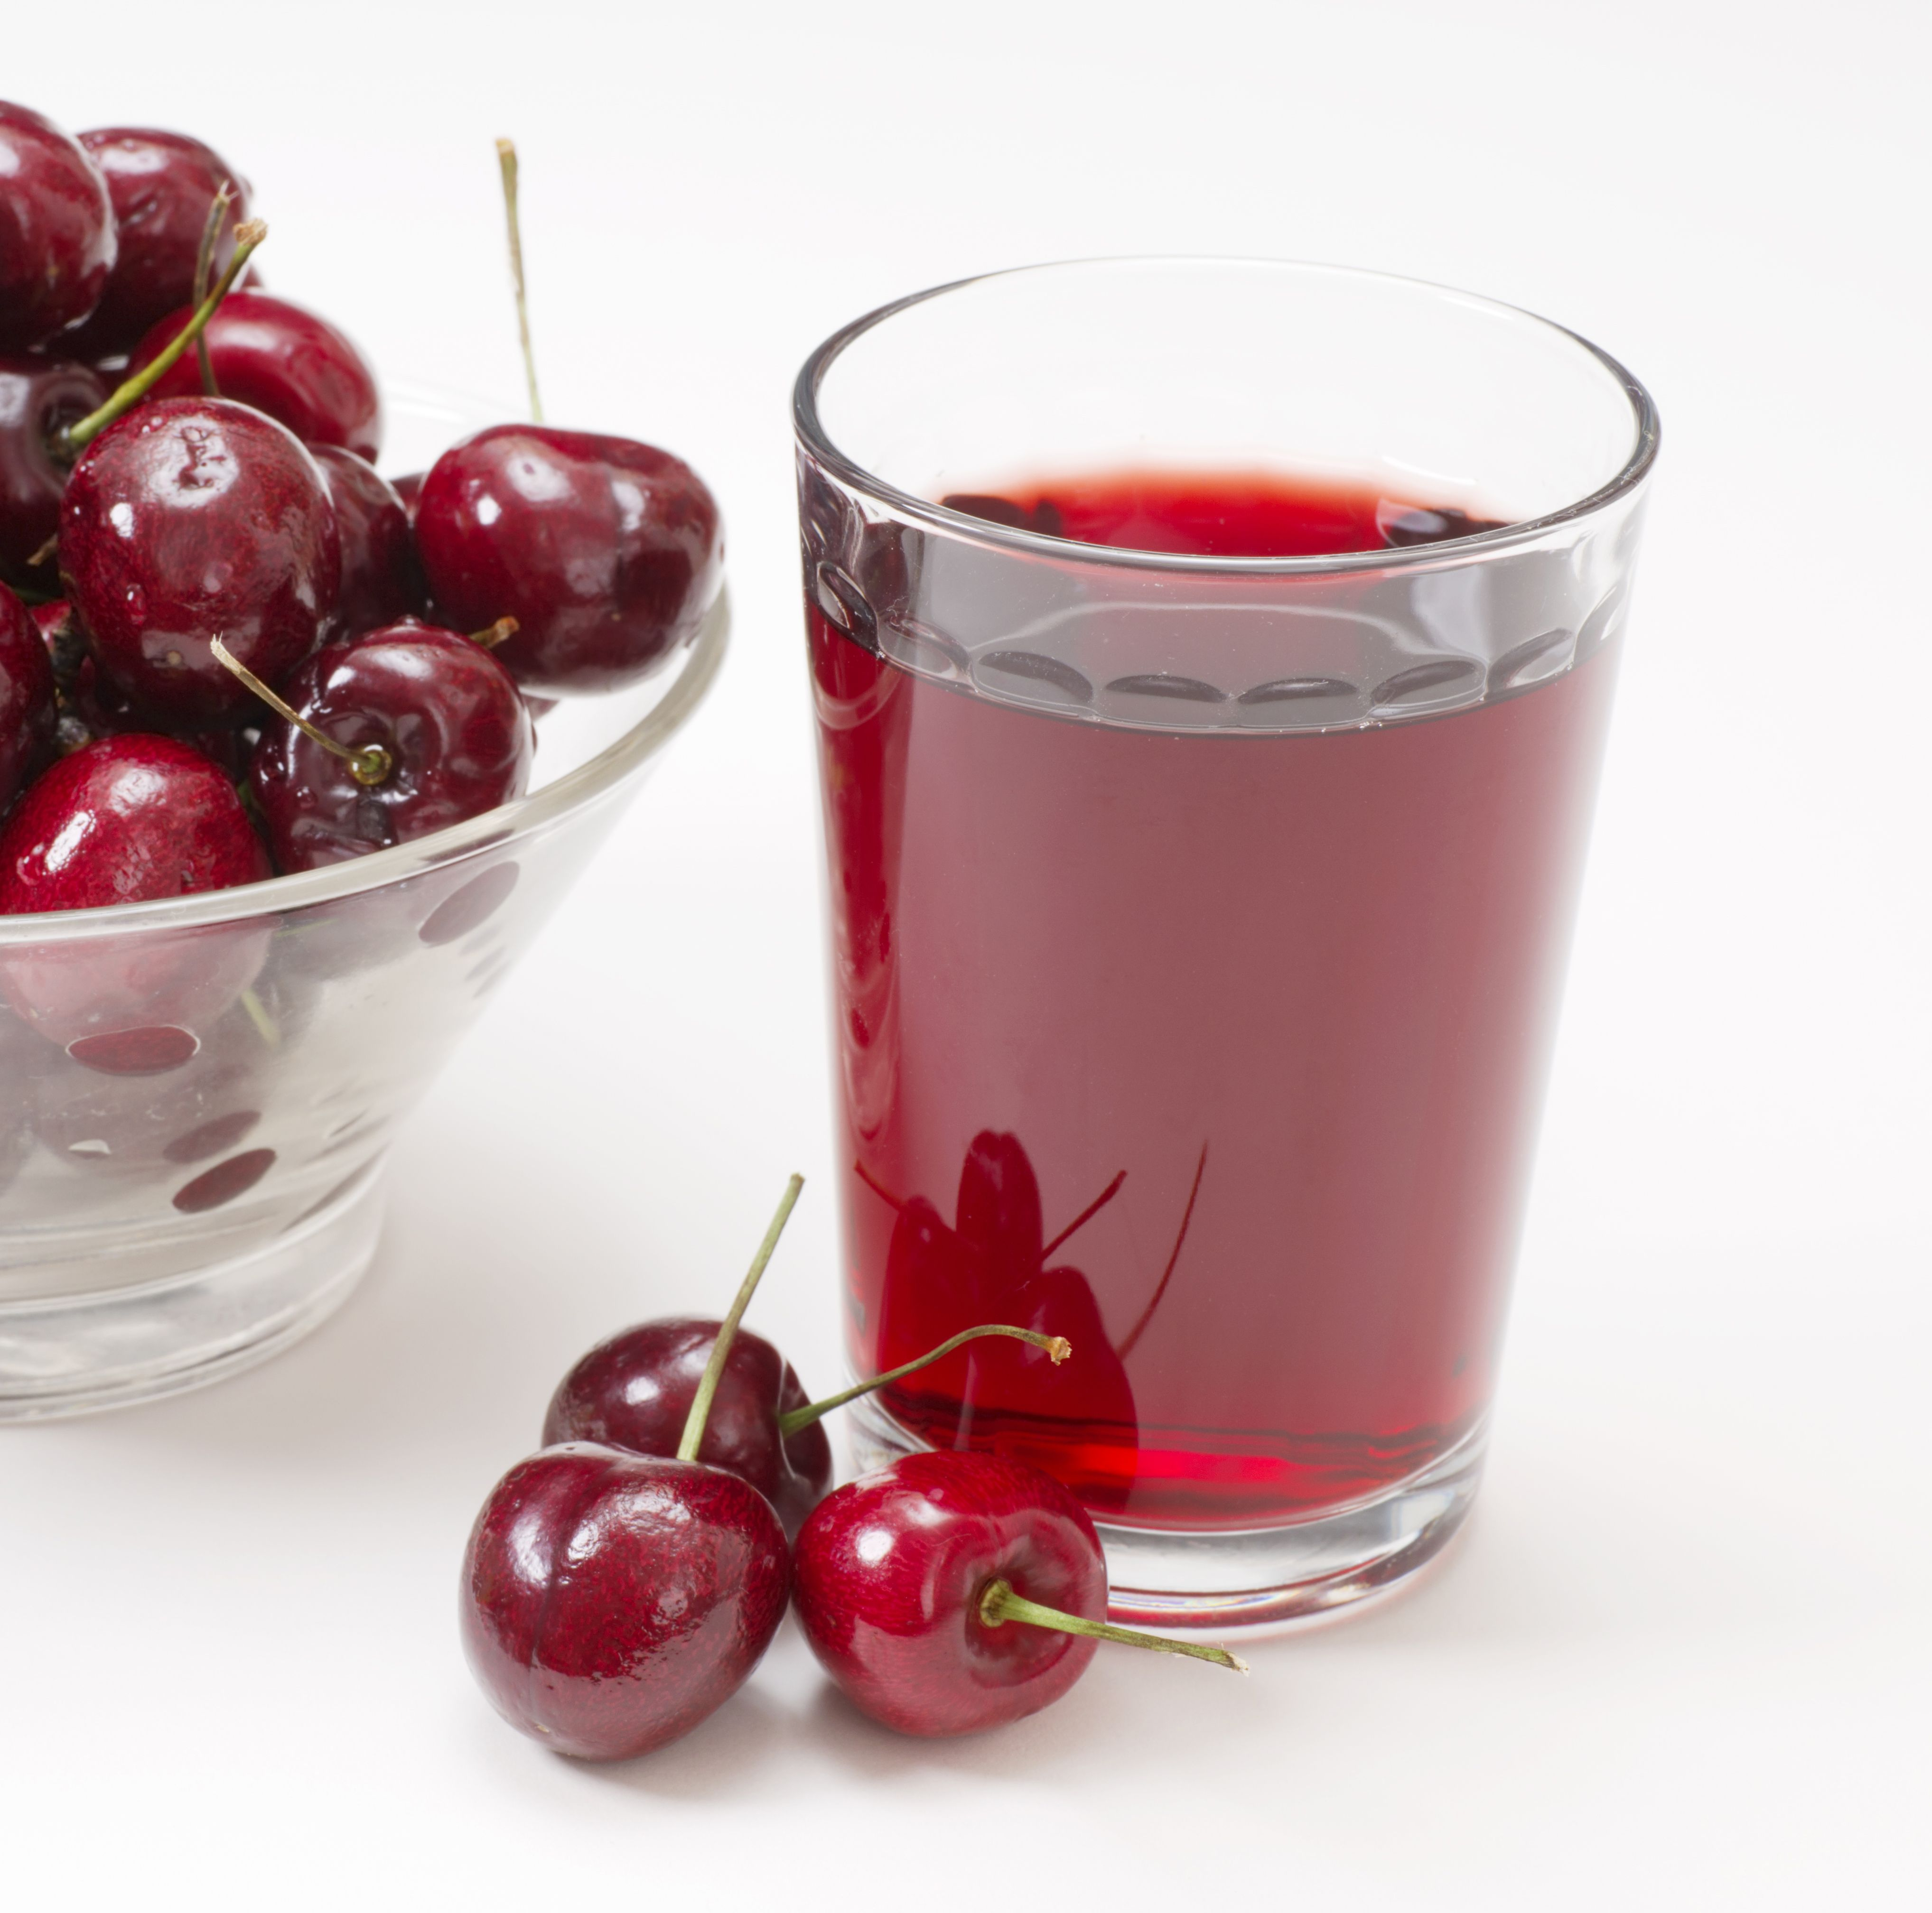 50 Best Superfoods - List of Healthy Superfoods